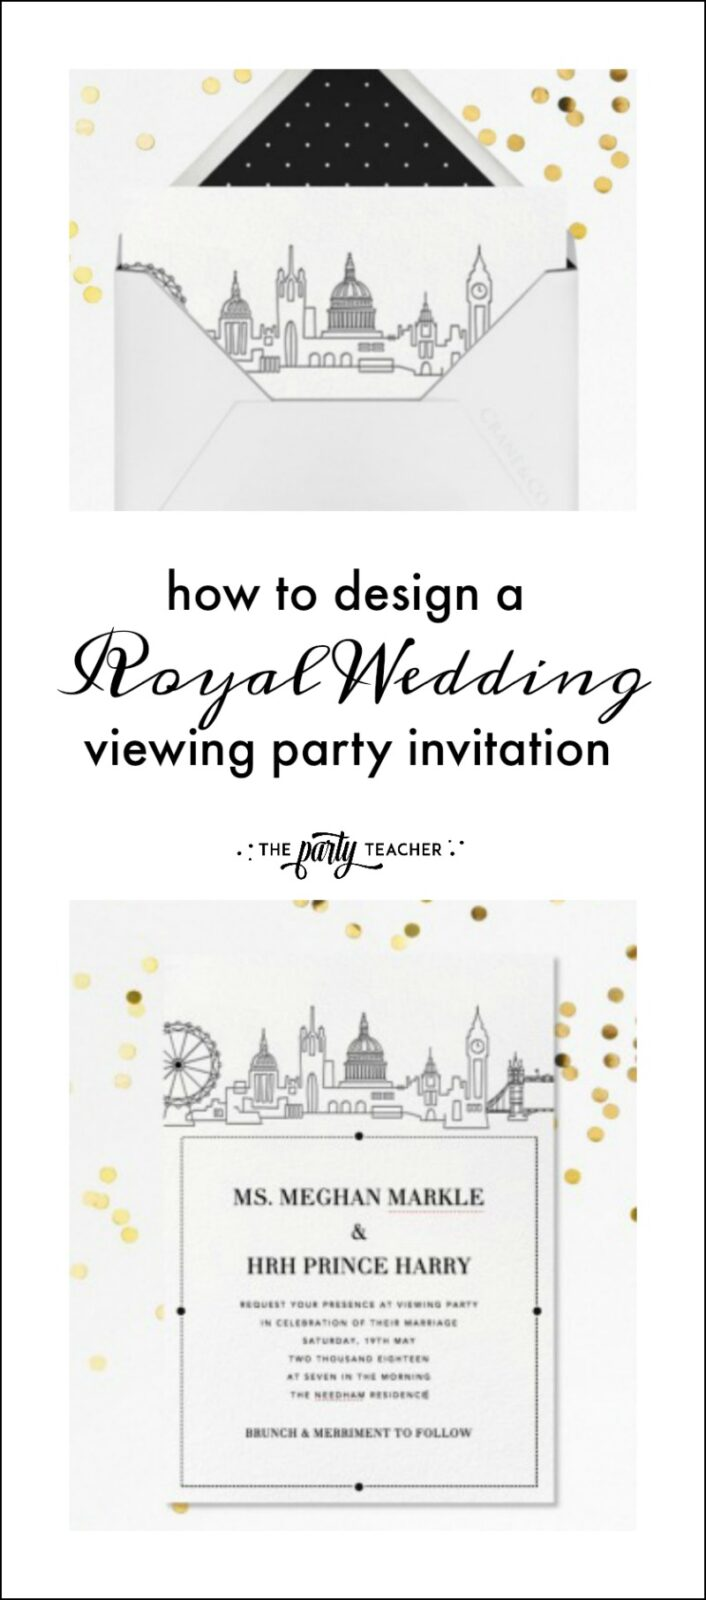 How to design a royal wedding party invitation with Paperless Post by The Party Teacher